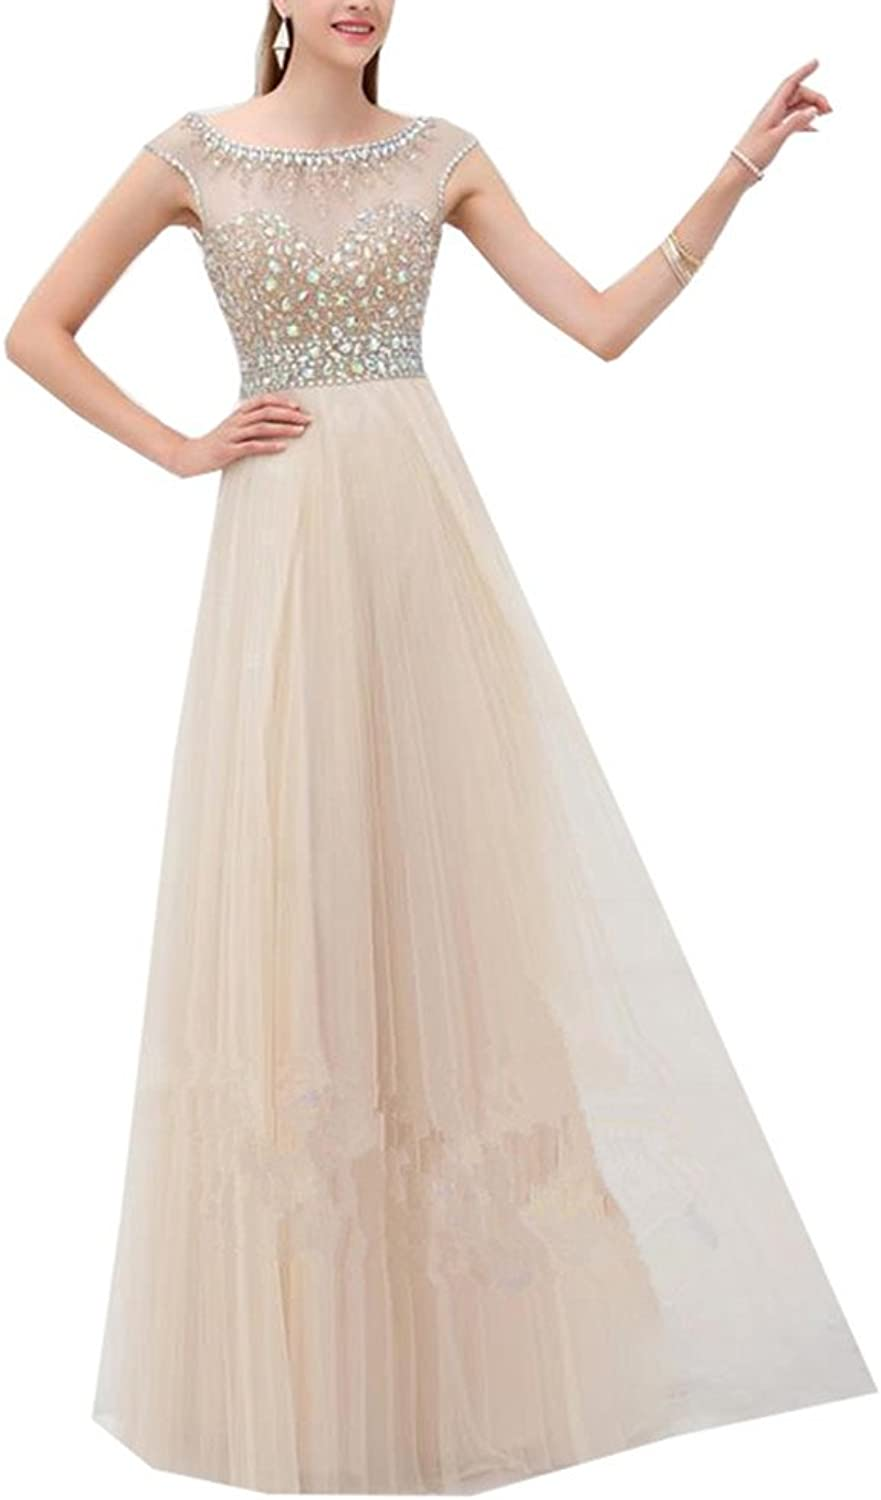 Ai Maria Women's Long Gauze Ball Gown Seam Bead Special Occasions